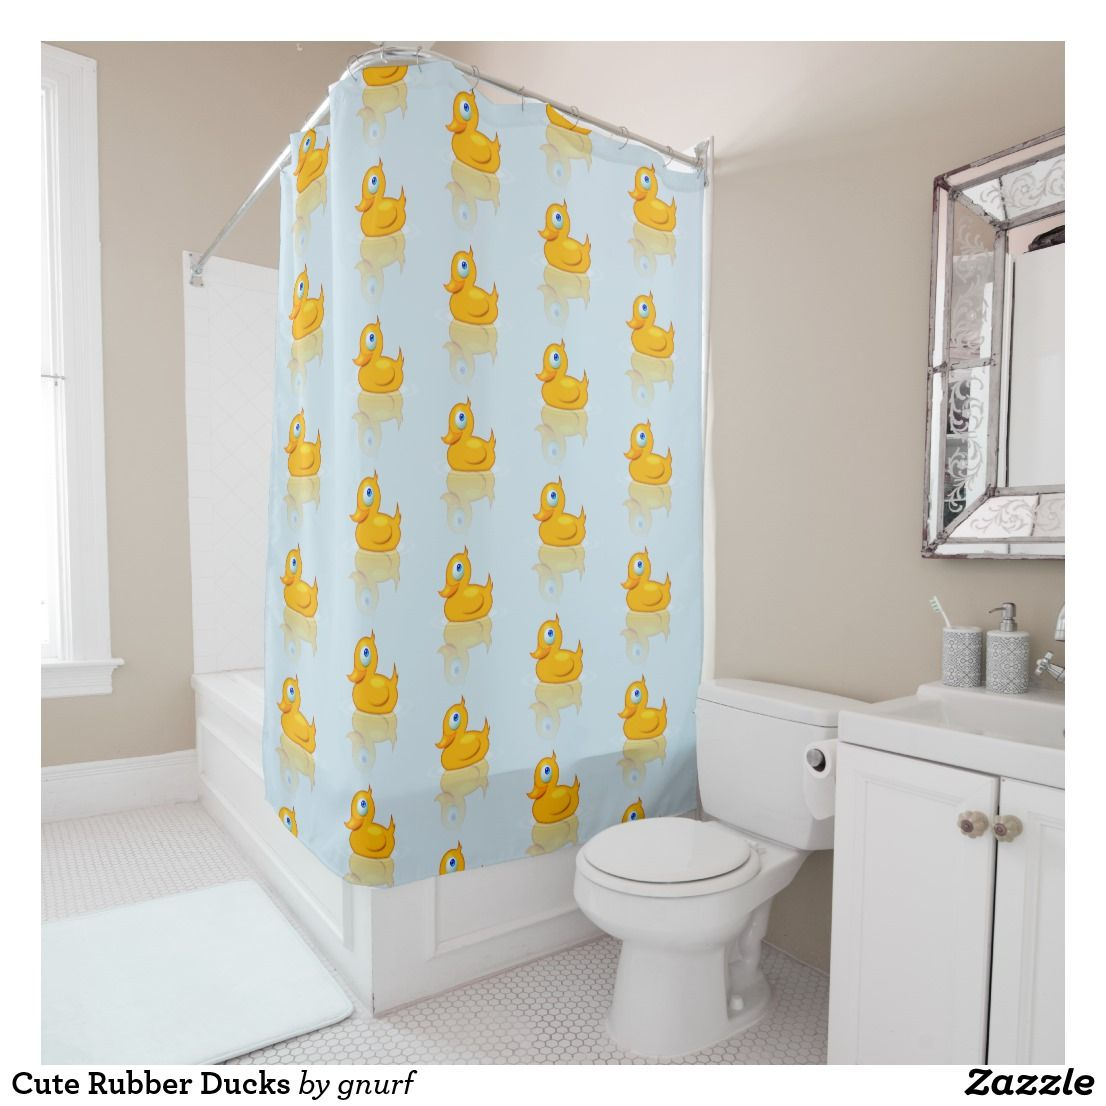 Cute Rubber Ducks Shower Curtain Zazzle Com Duck Shower Curtain Funny Shower Curtains Shower Curtain